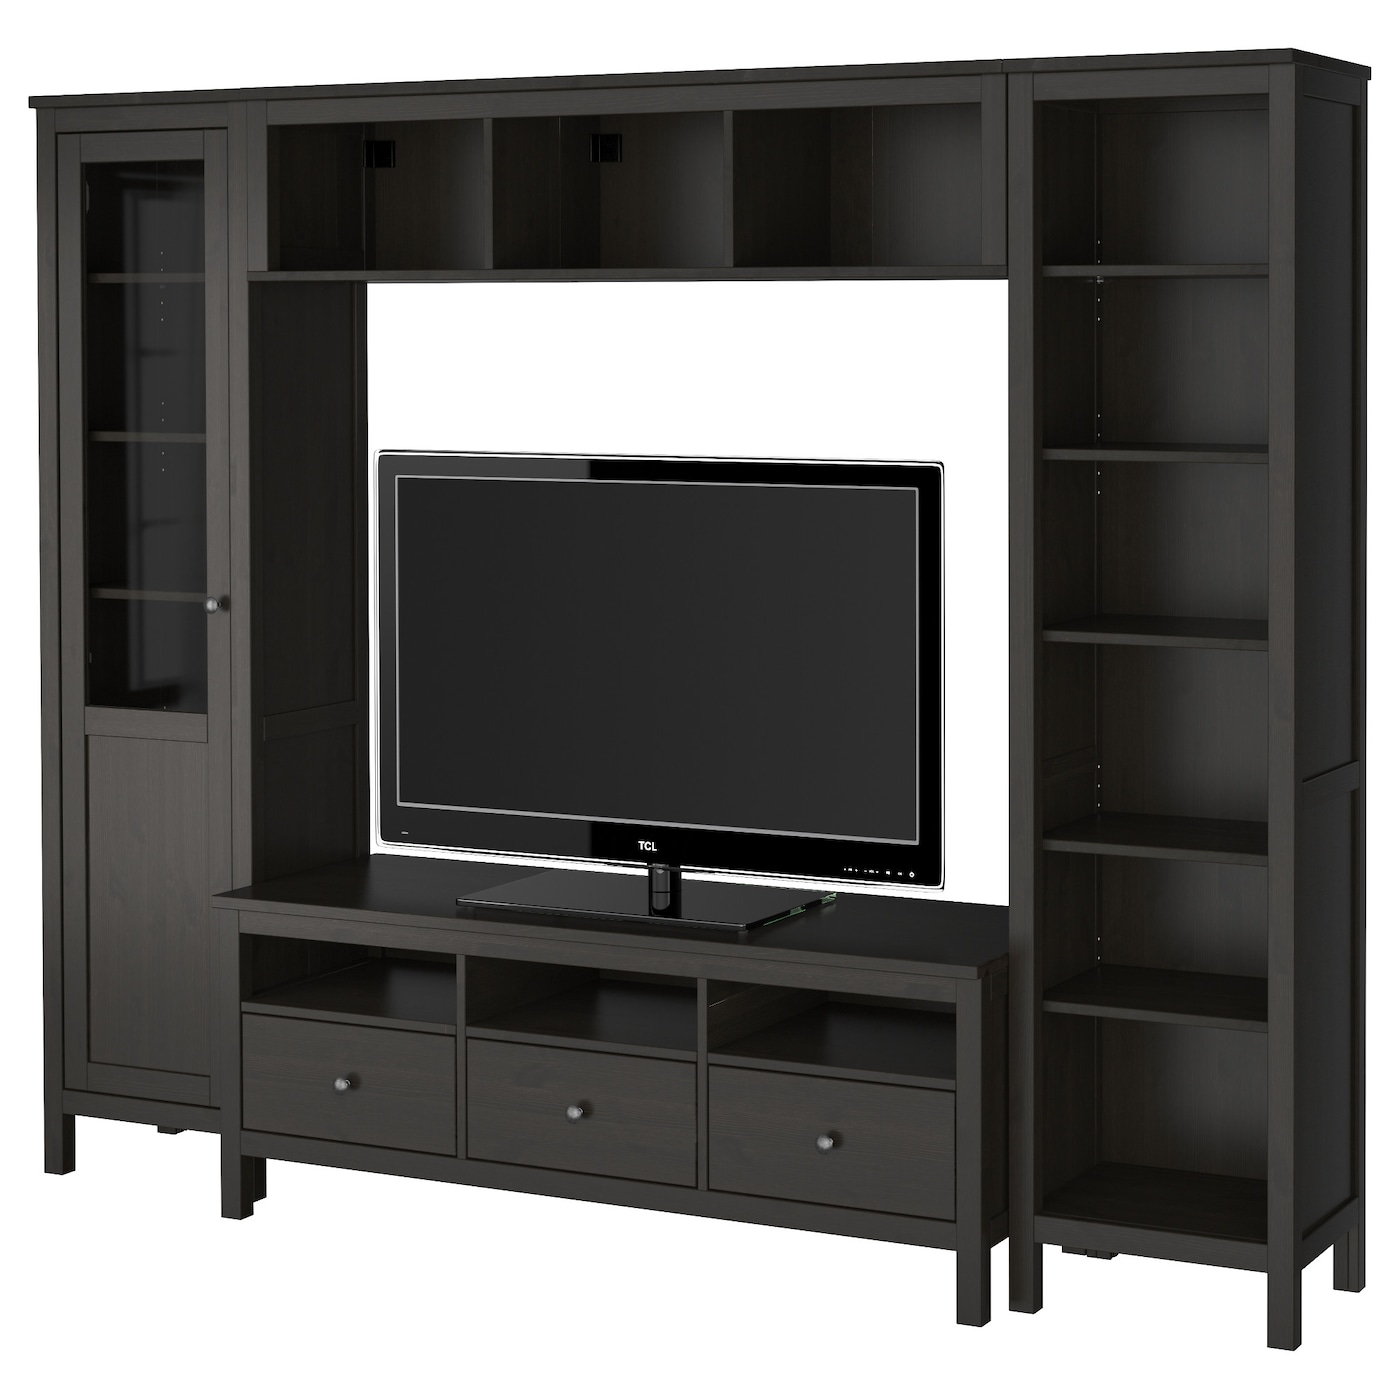 Hemnes Tv Storage Combination Black Brown 246 X 197 Cm Ikea